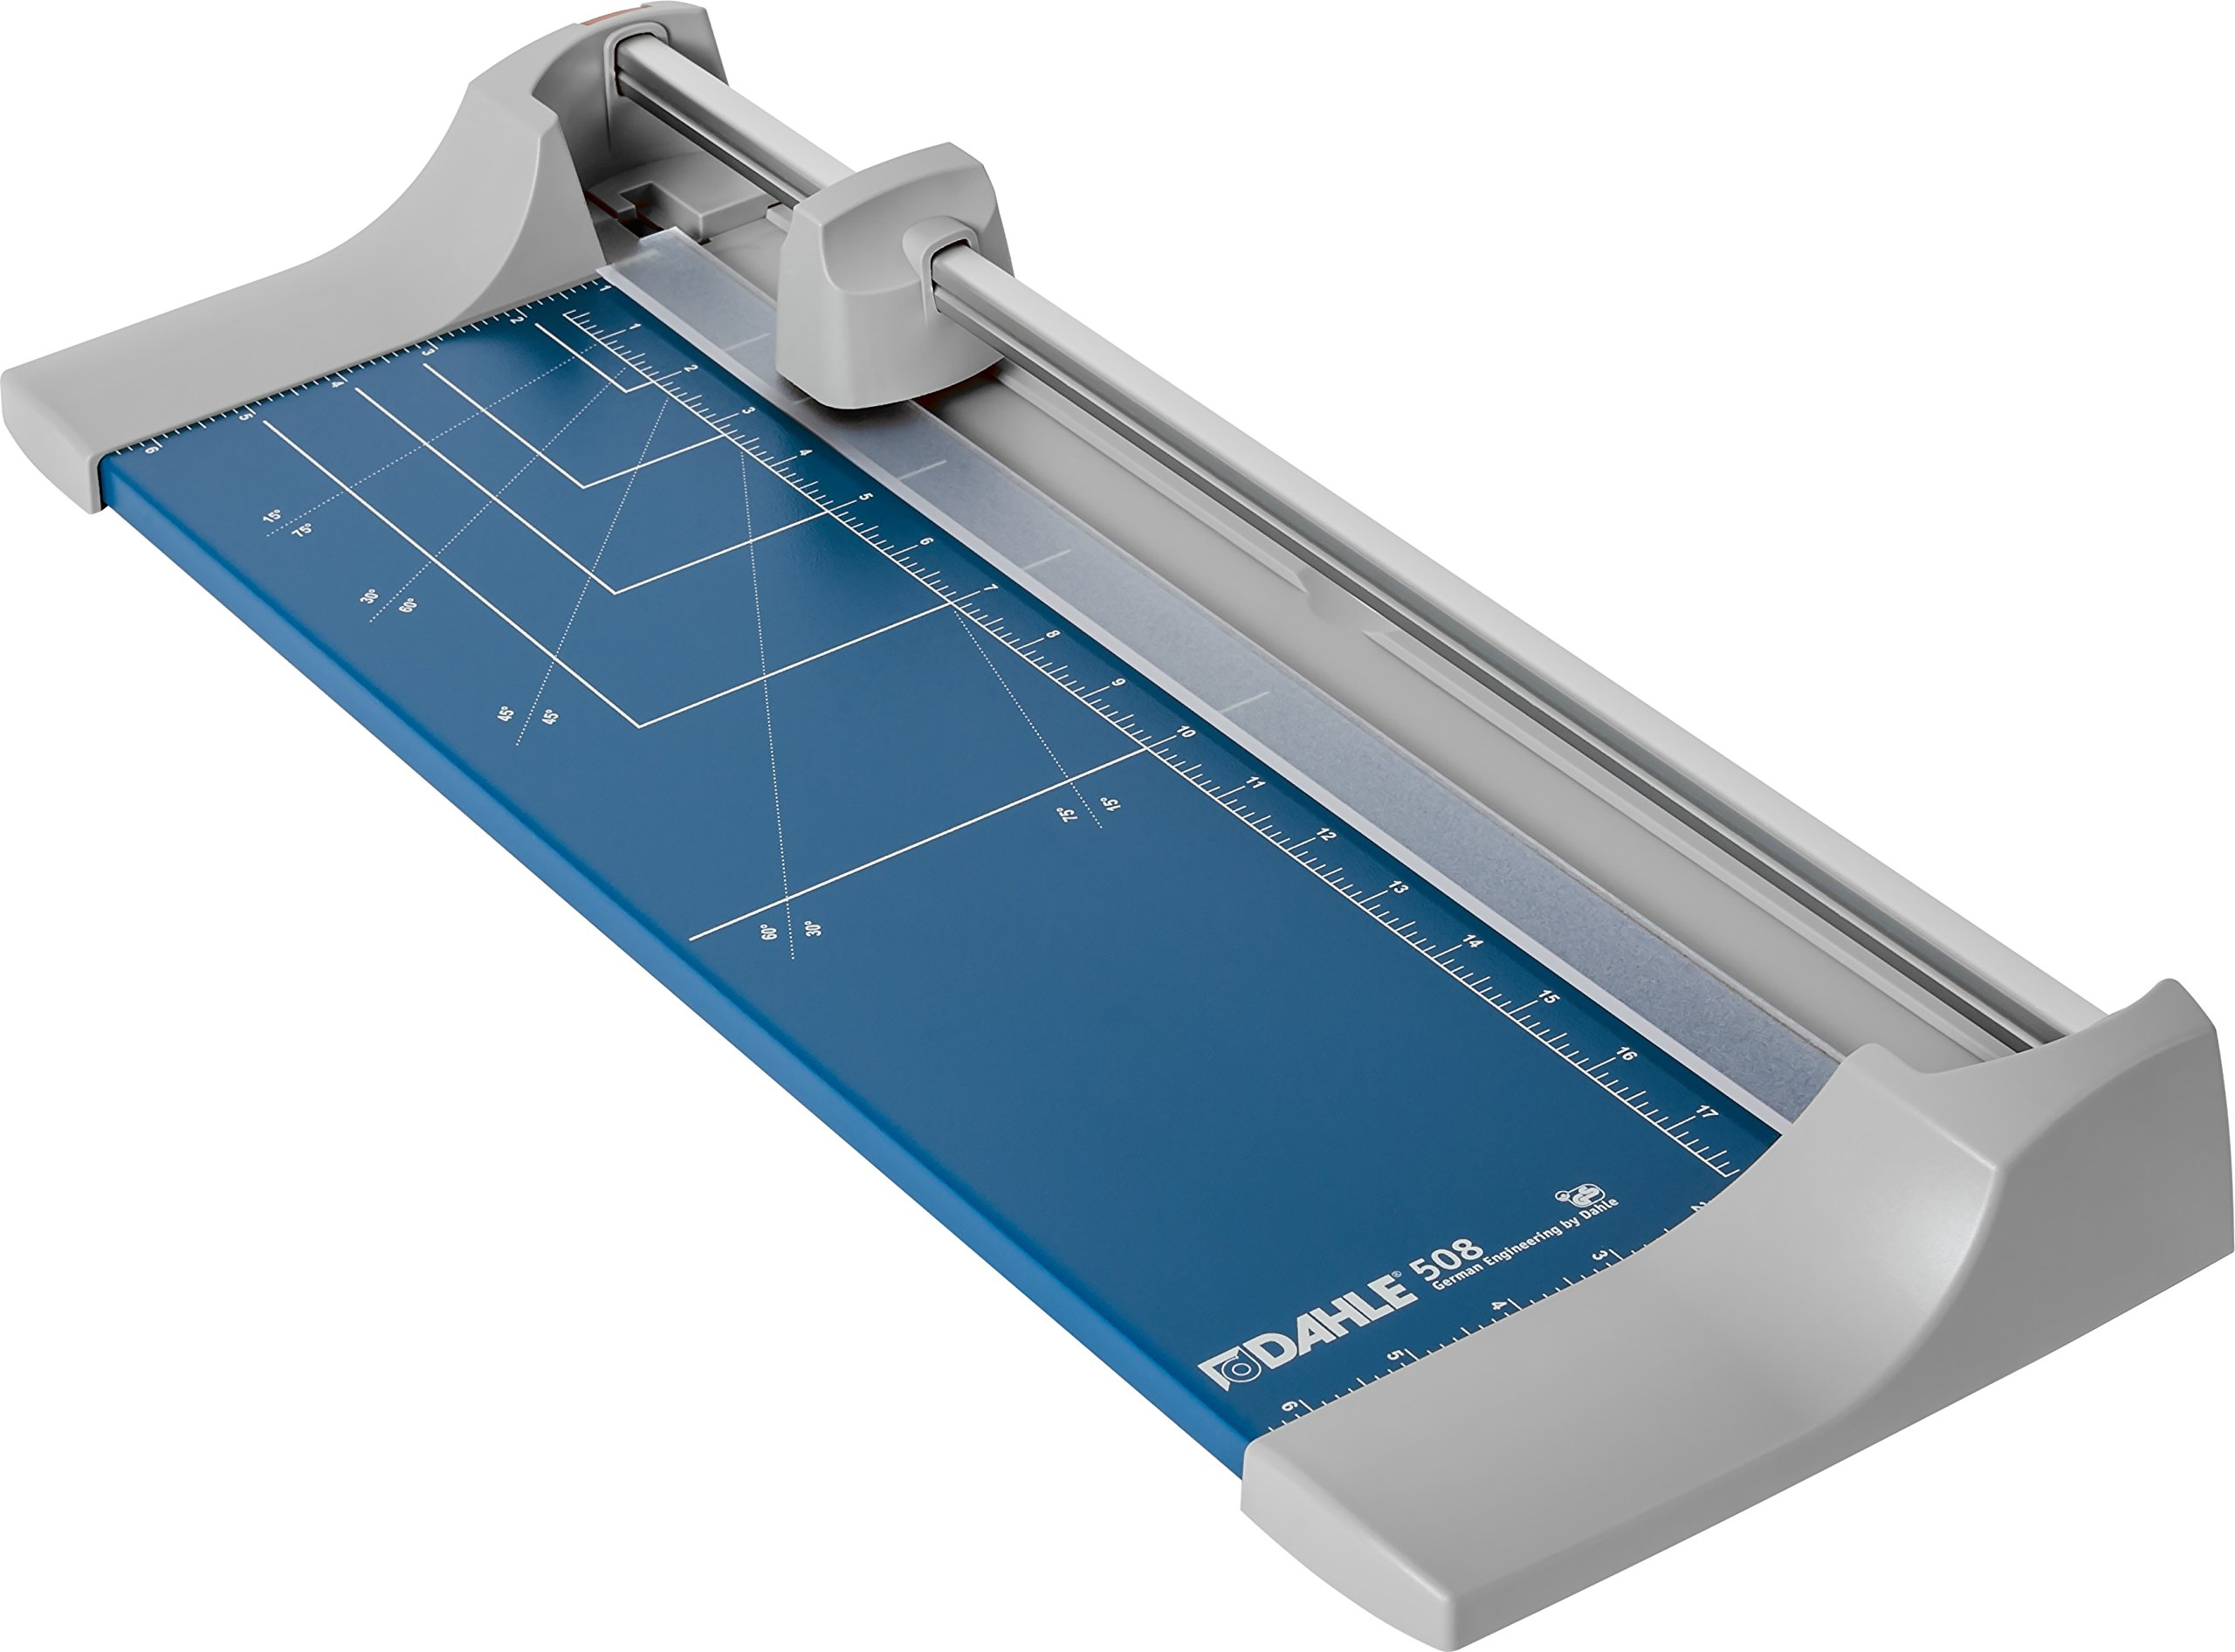 Dahle Personal Self Sharpening Automatic Engineered